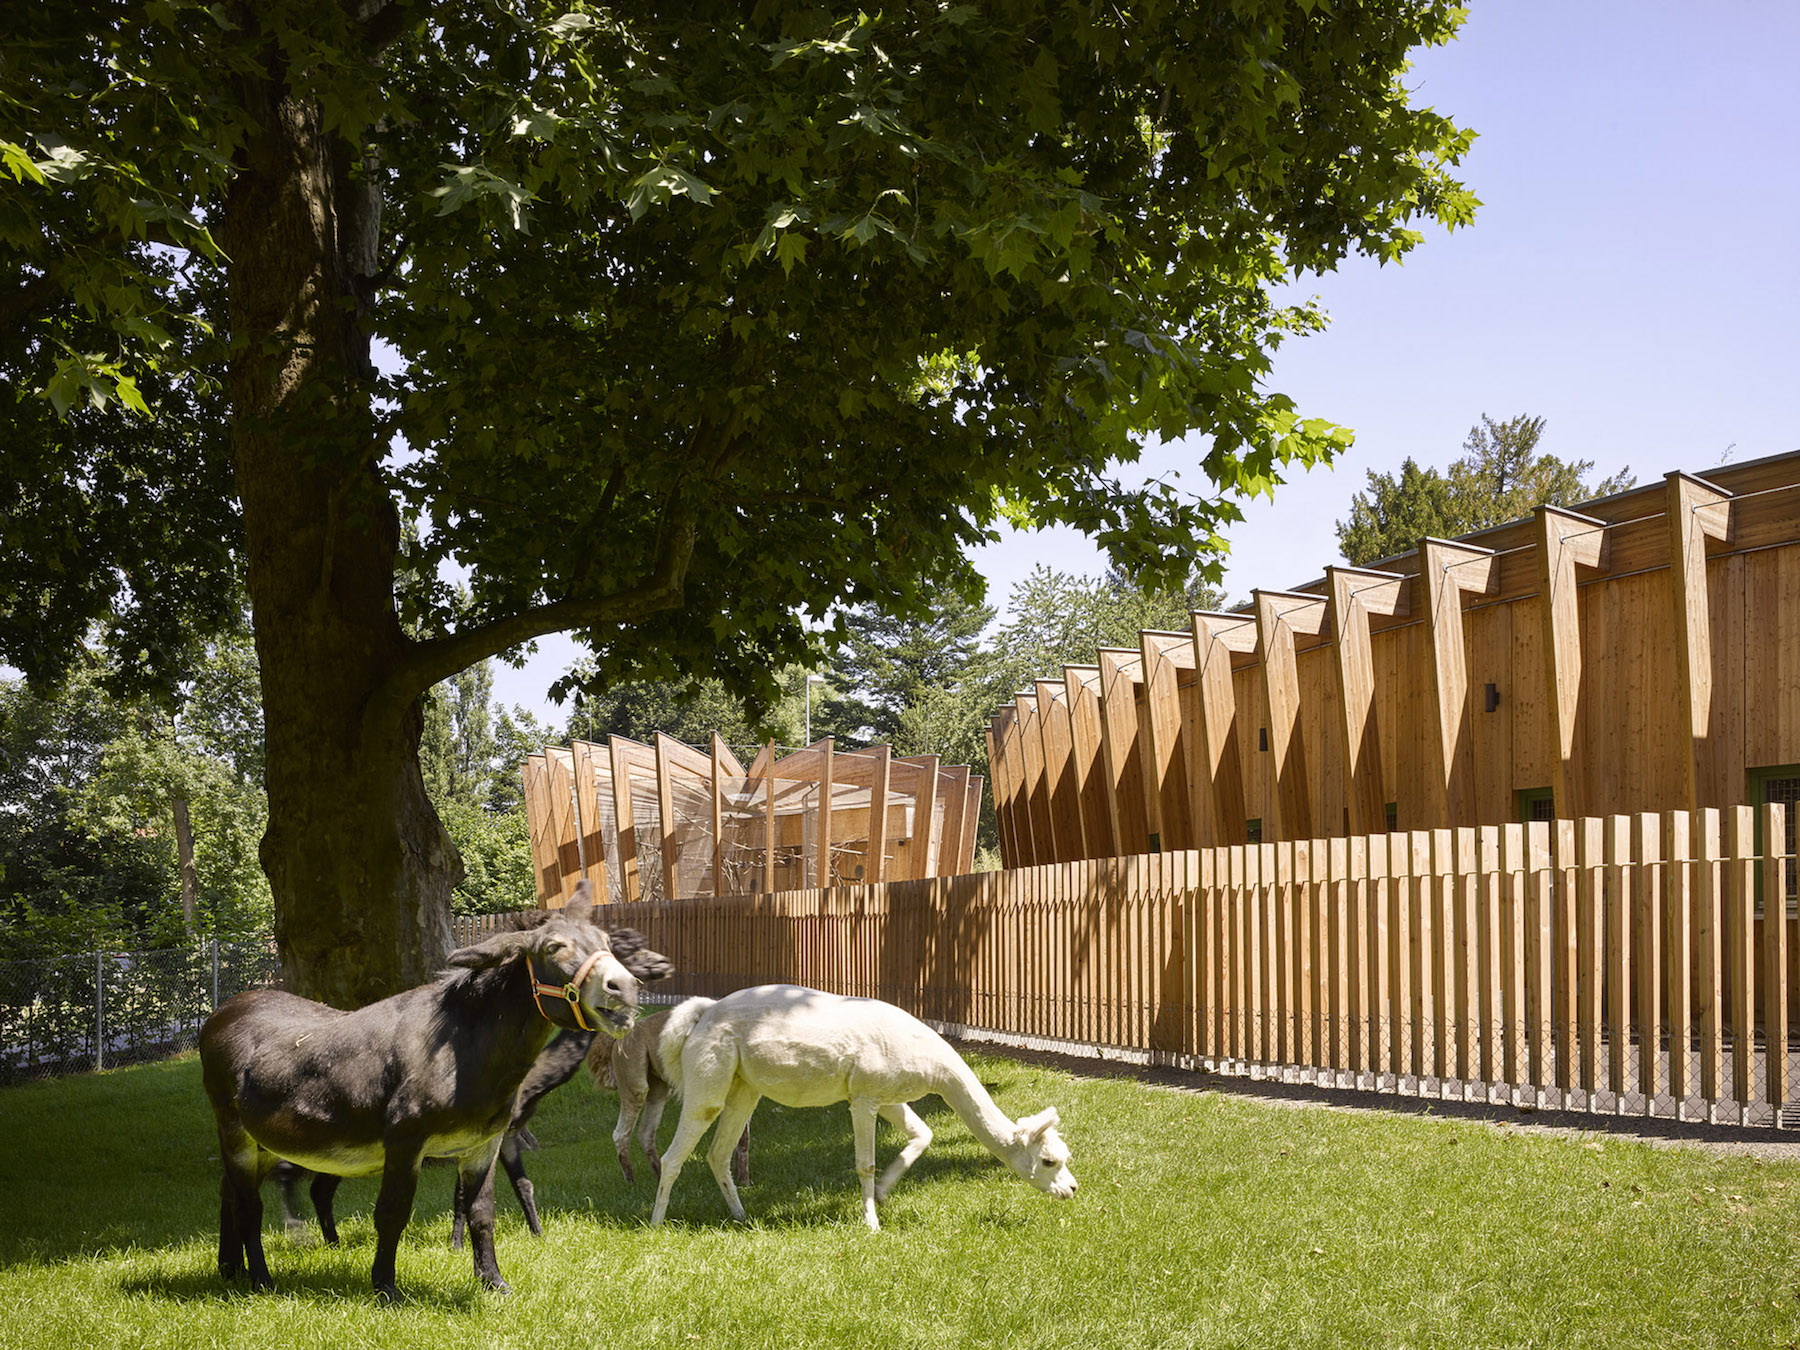 Öhringen Petting Zoo architecture